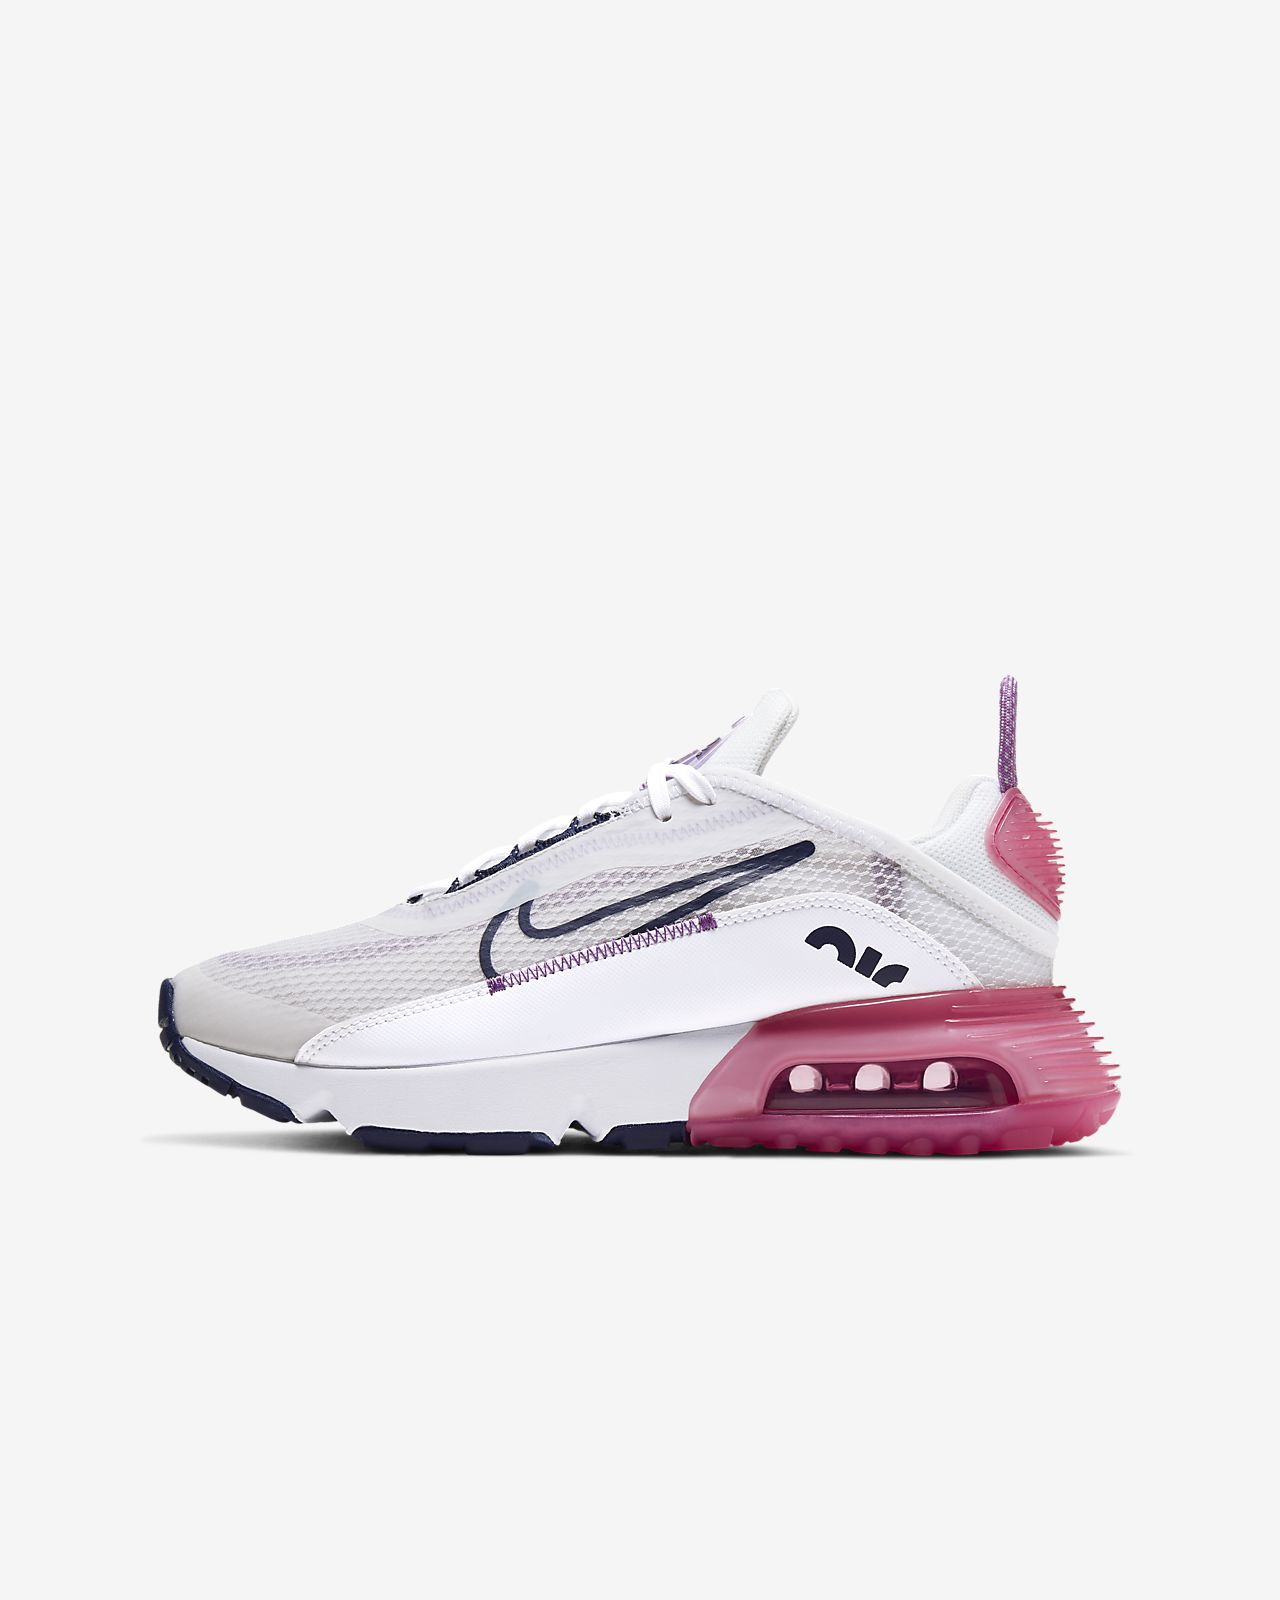 Guadalupe Store Nike Air Max 2090 'Lava Glow . فيس بوك'